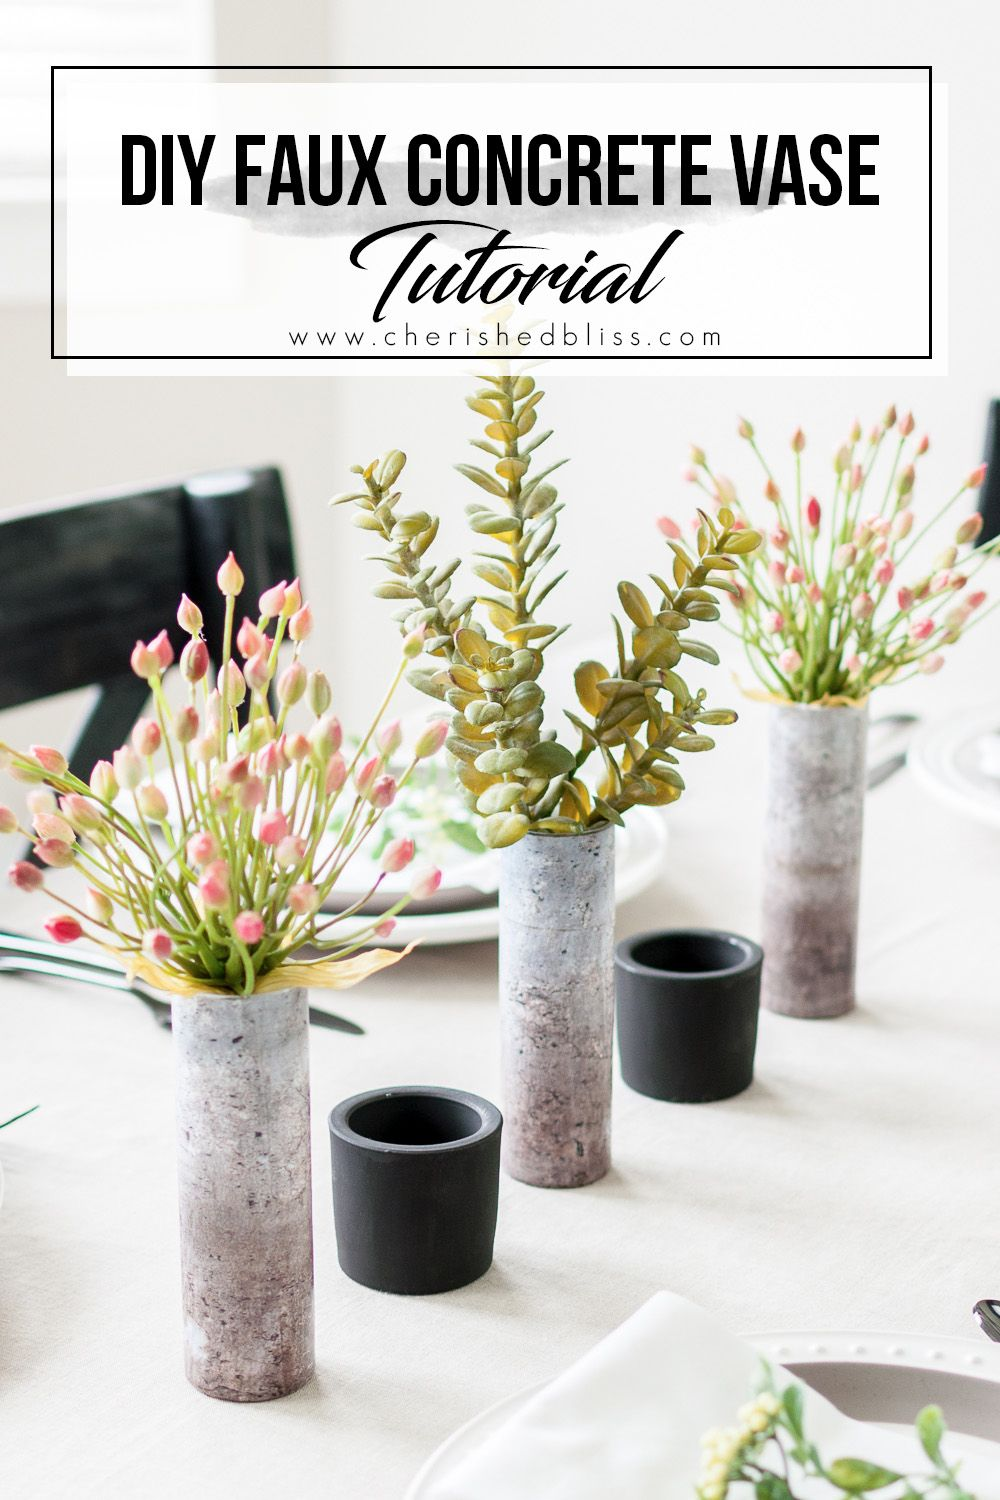 Diy Faux Concrete Vase Tutorial Your Best Diy Projects Pinterest